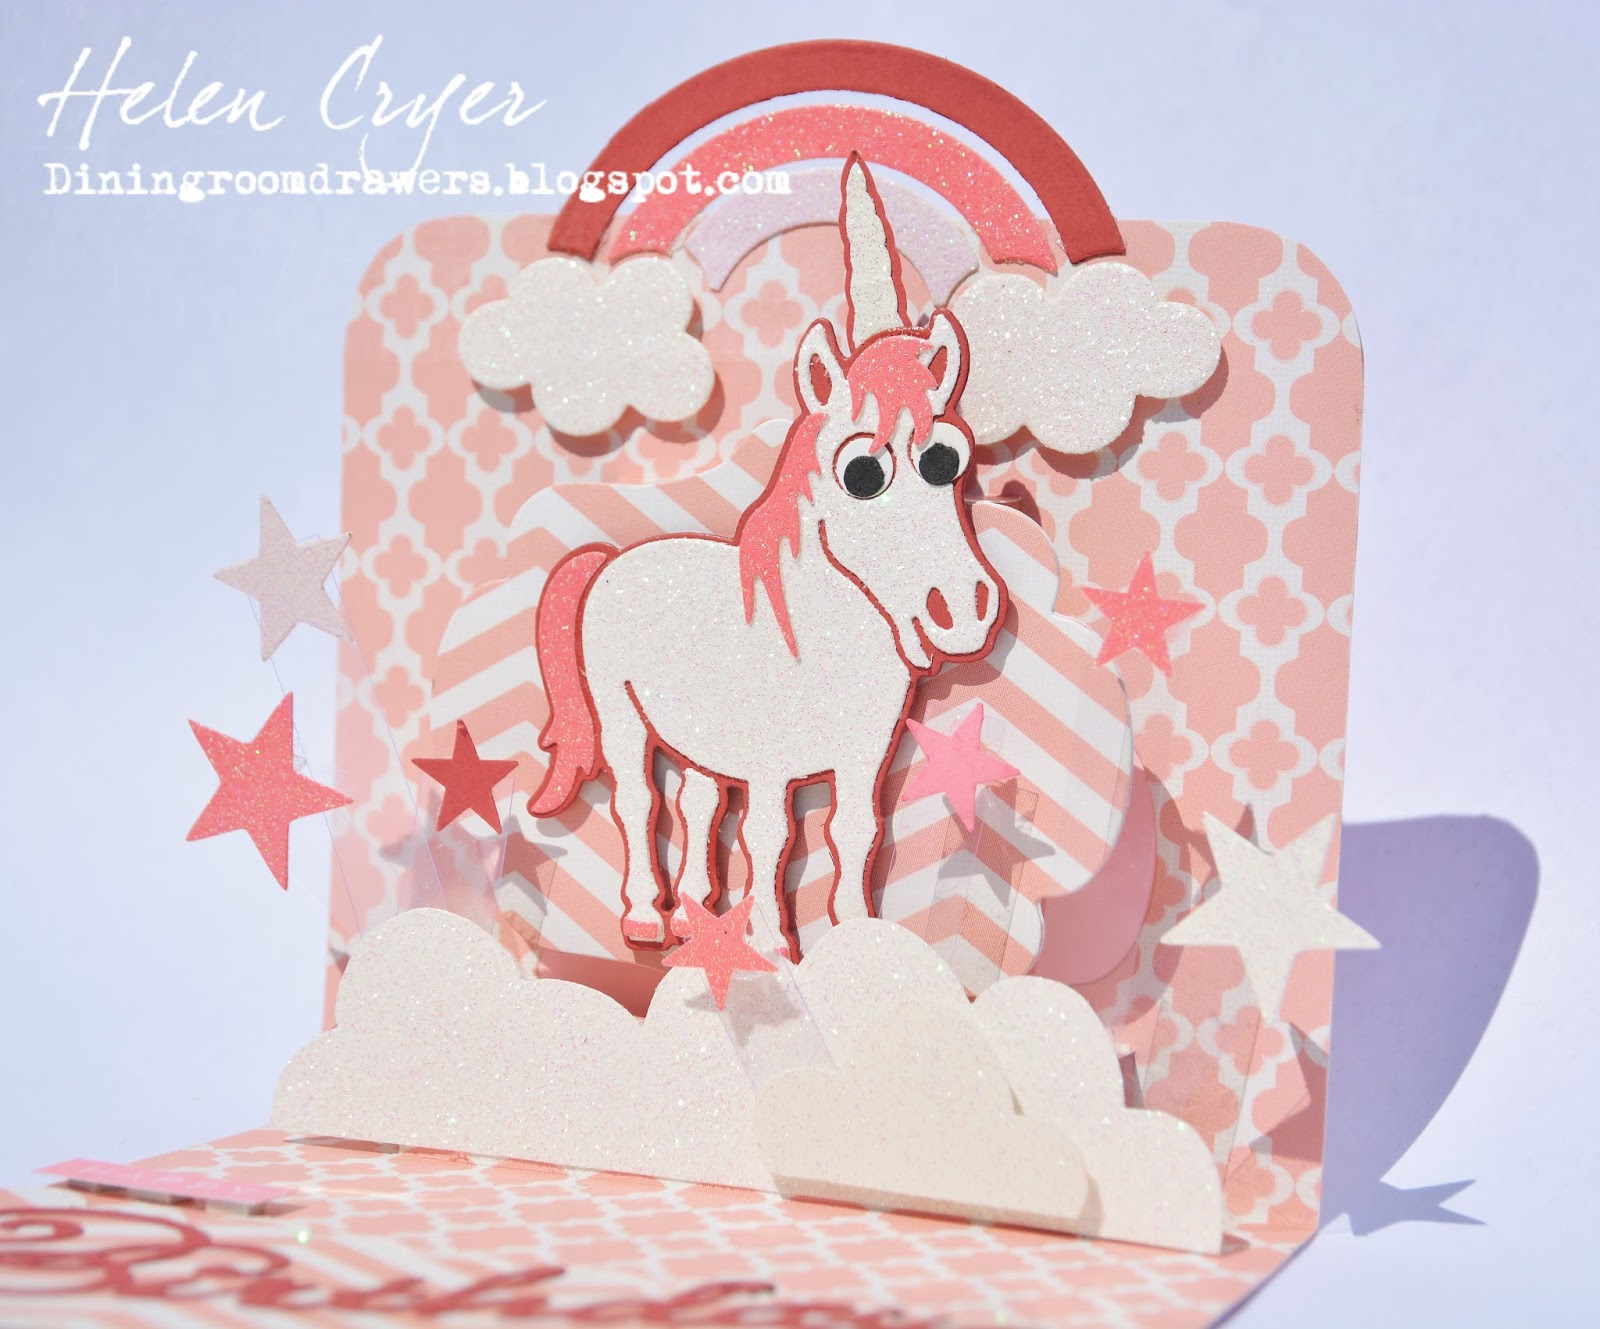 the dining room drawers pop it ups 'cocoa the horse' unicorn, Birthday card